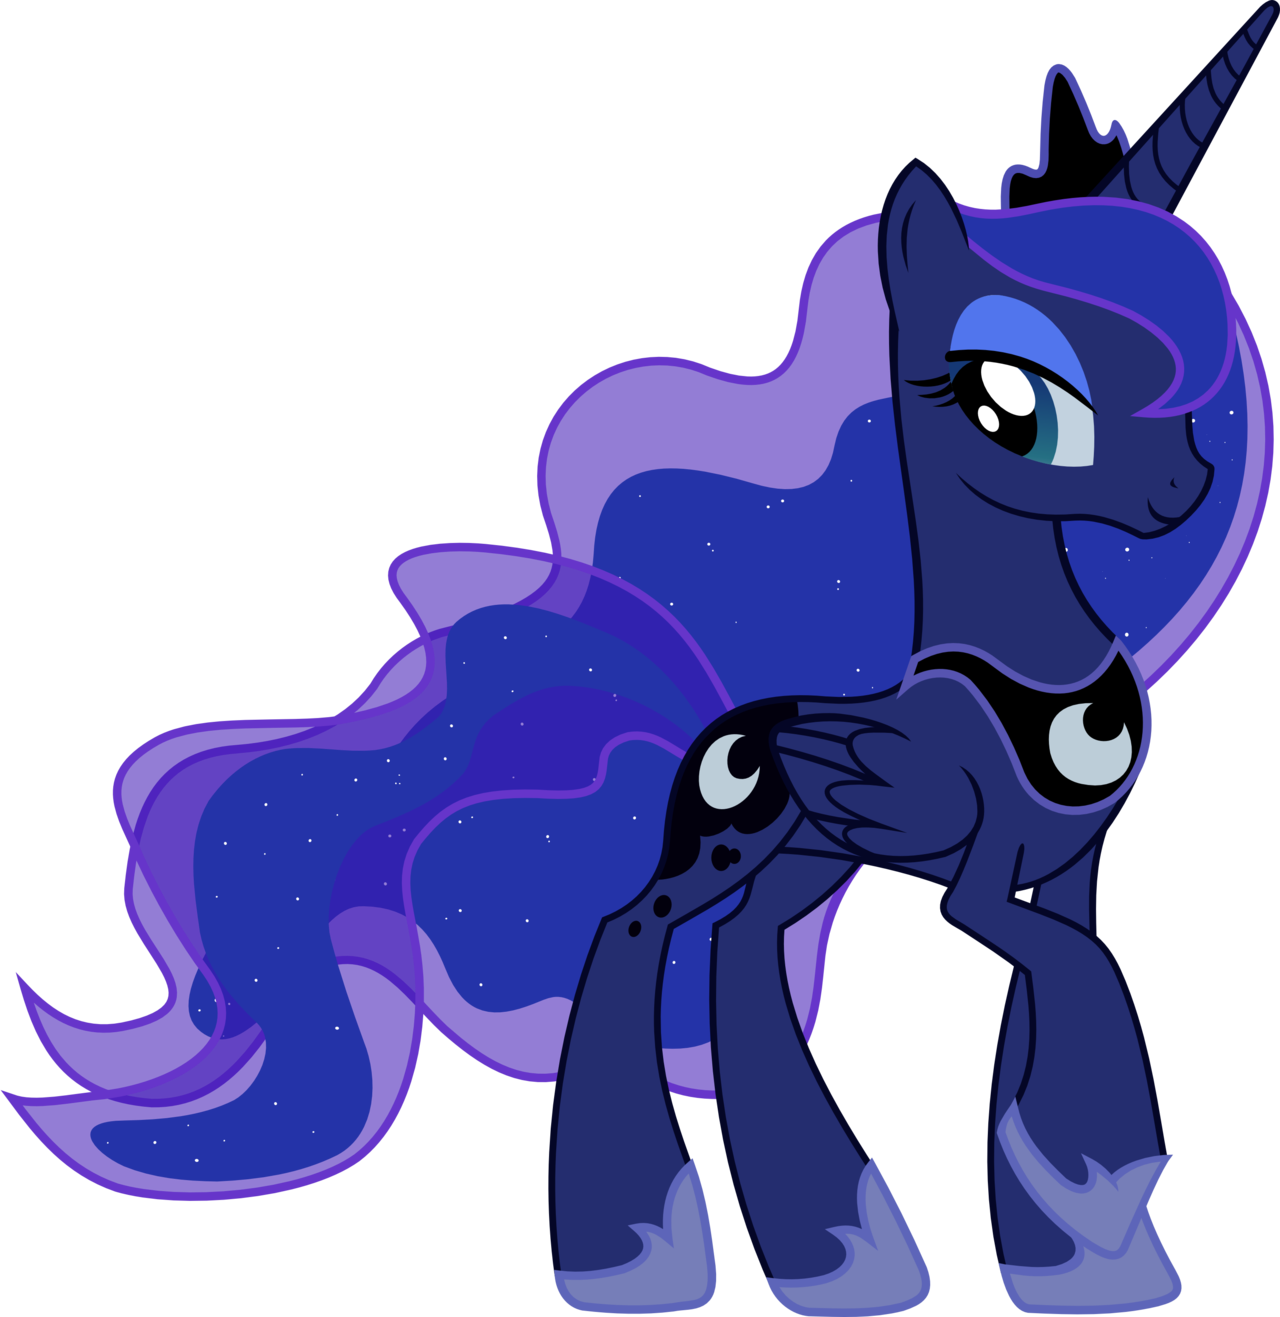 Character transparent my little pony. Image fanmade princess luna